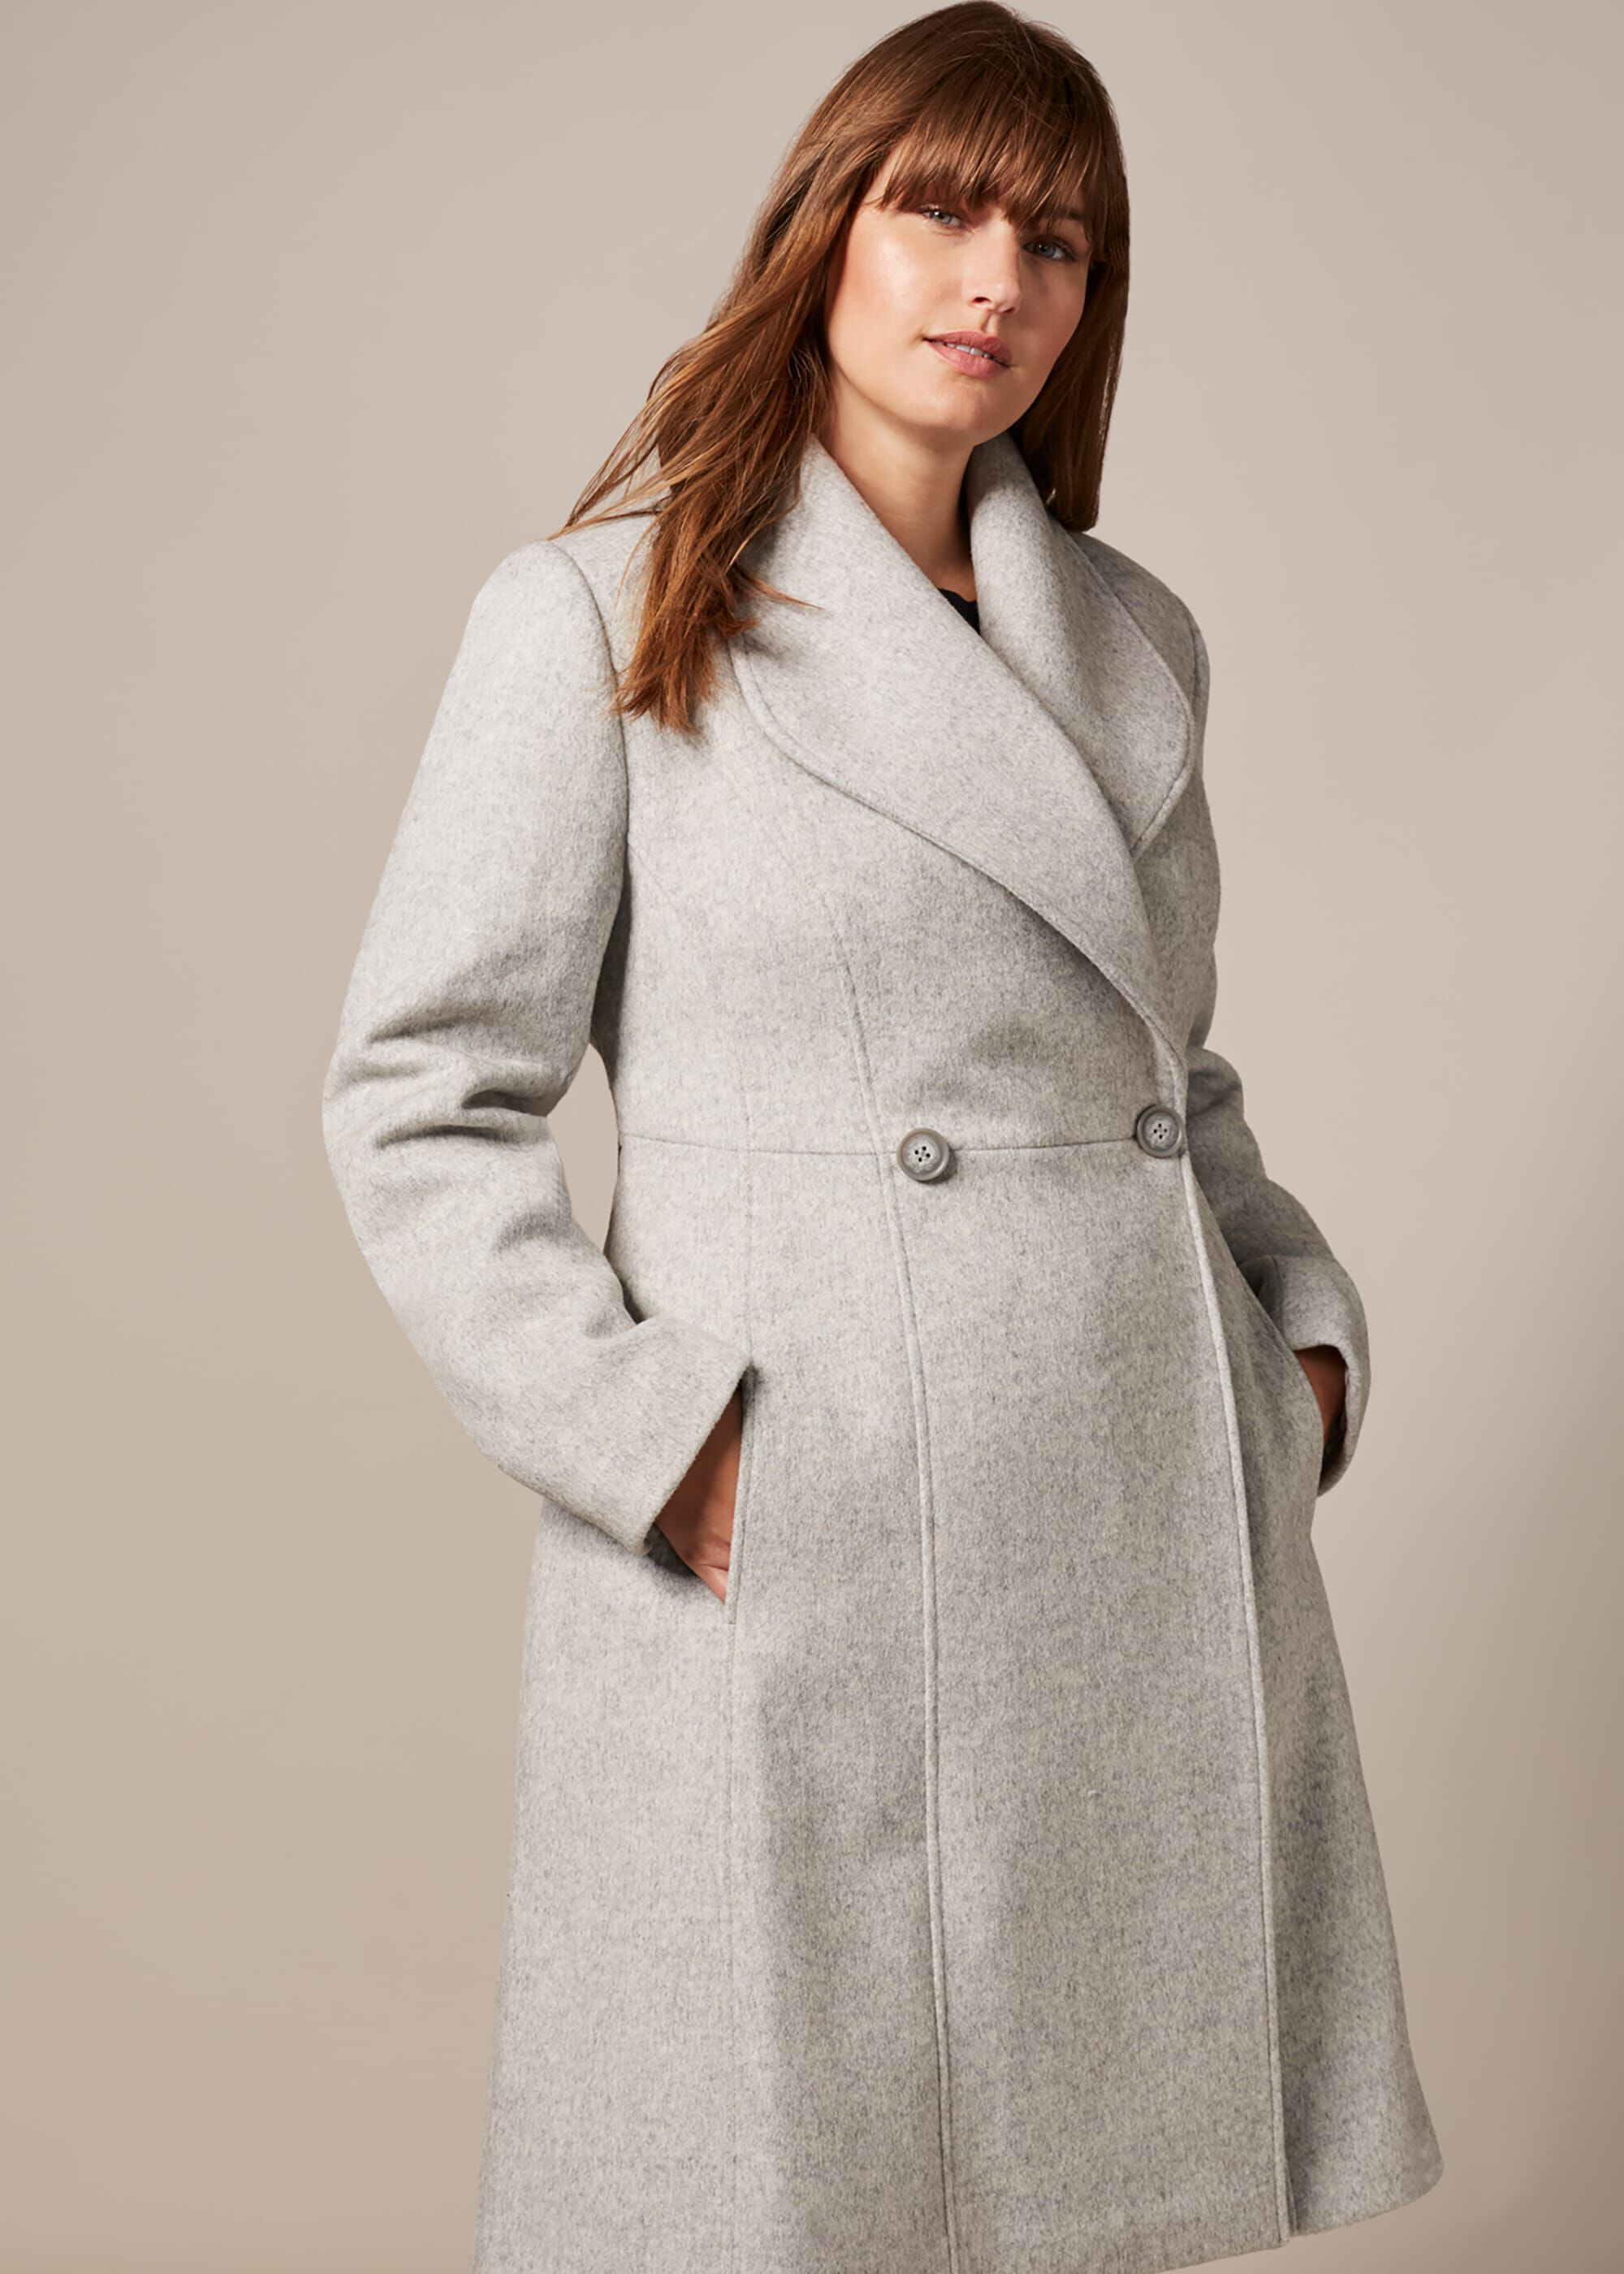 1940s Style Coats and Jackets for Sale Studio 8 Ayda Wool Coat Grey £176.00 AT vintagedancer.com